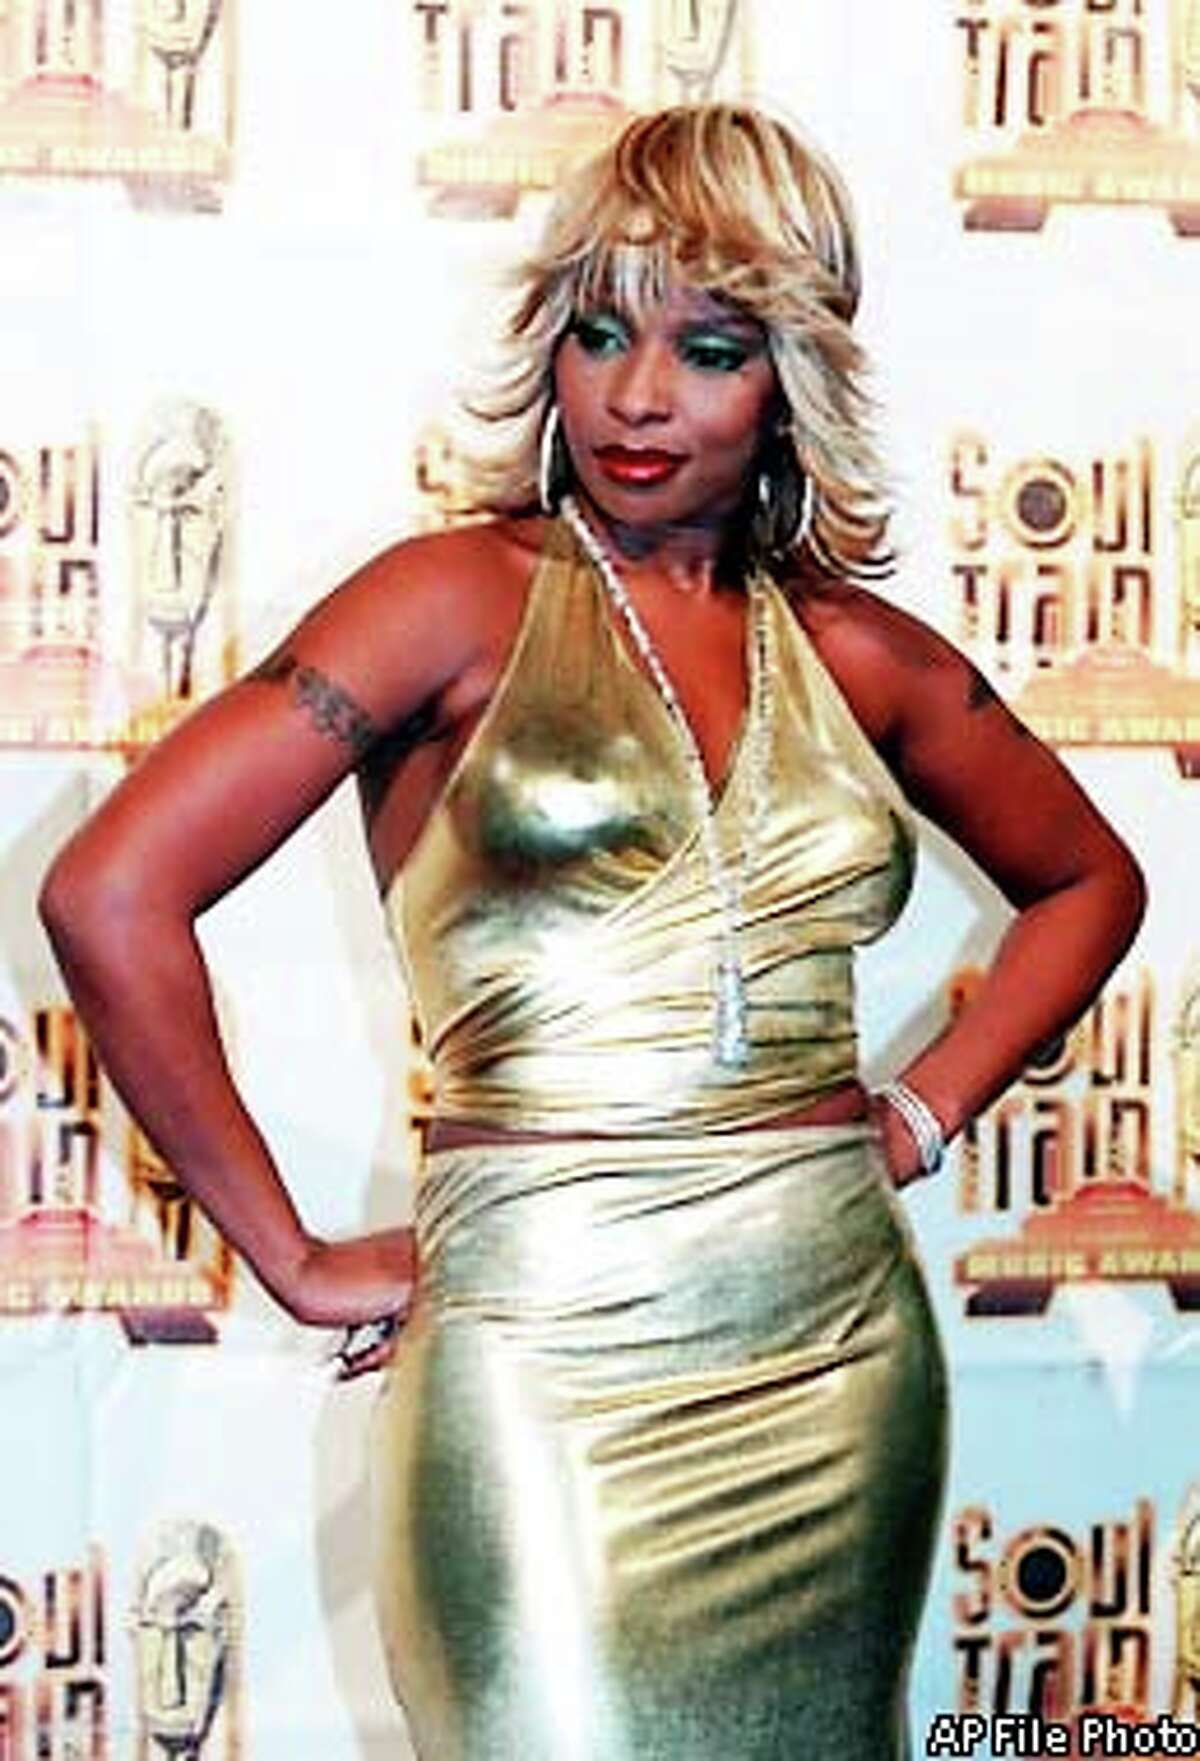 """Mary J. Blige poses backstage at the 14th Annual Soul Train Music Awards at the Shrine Auditorium in Los Angeles Saturday night, March 4, 2000. Blige was honored as Female Entertainer of the Year. Her album """"Mary"""" also won Best R&B/Soul Album, Female. AP File Photo by Chris Pizzello"""